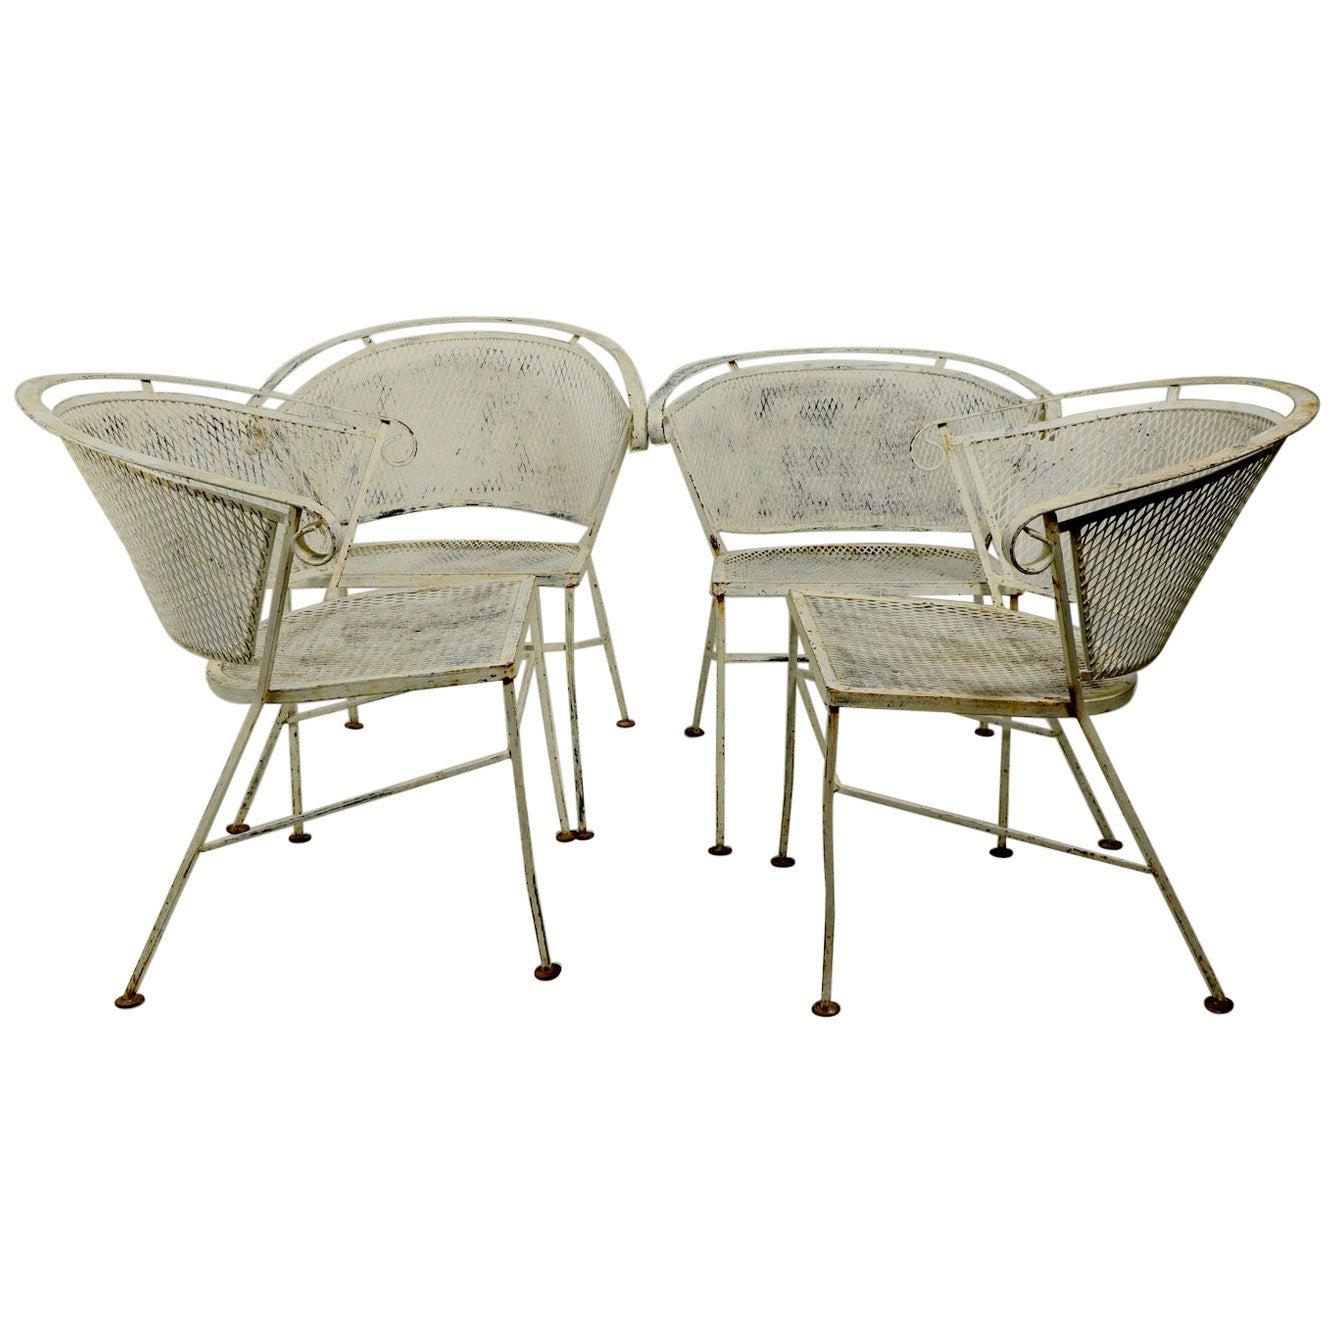 Set of 4 Patio Garden Dining Chairs Attributed to Salterini